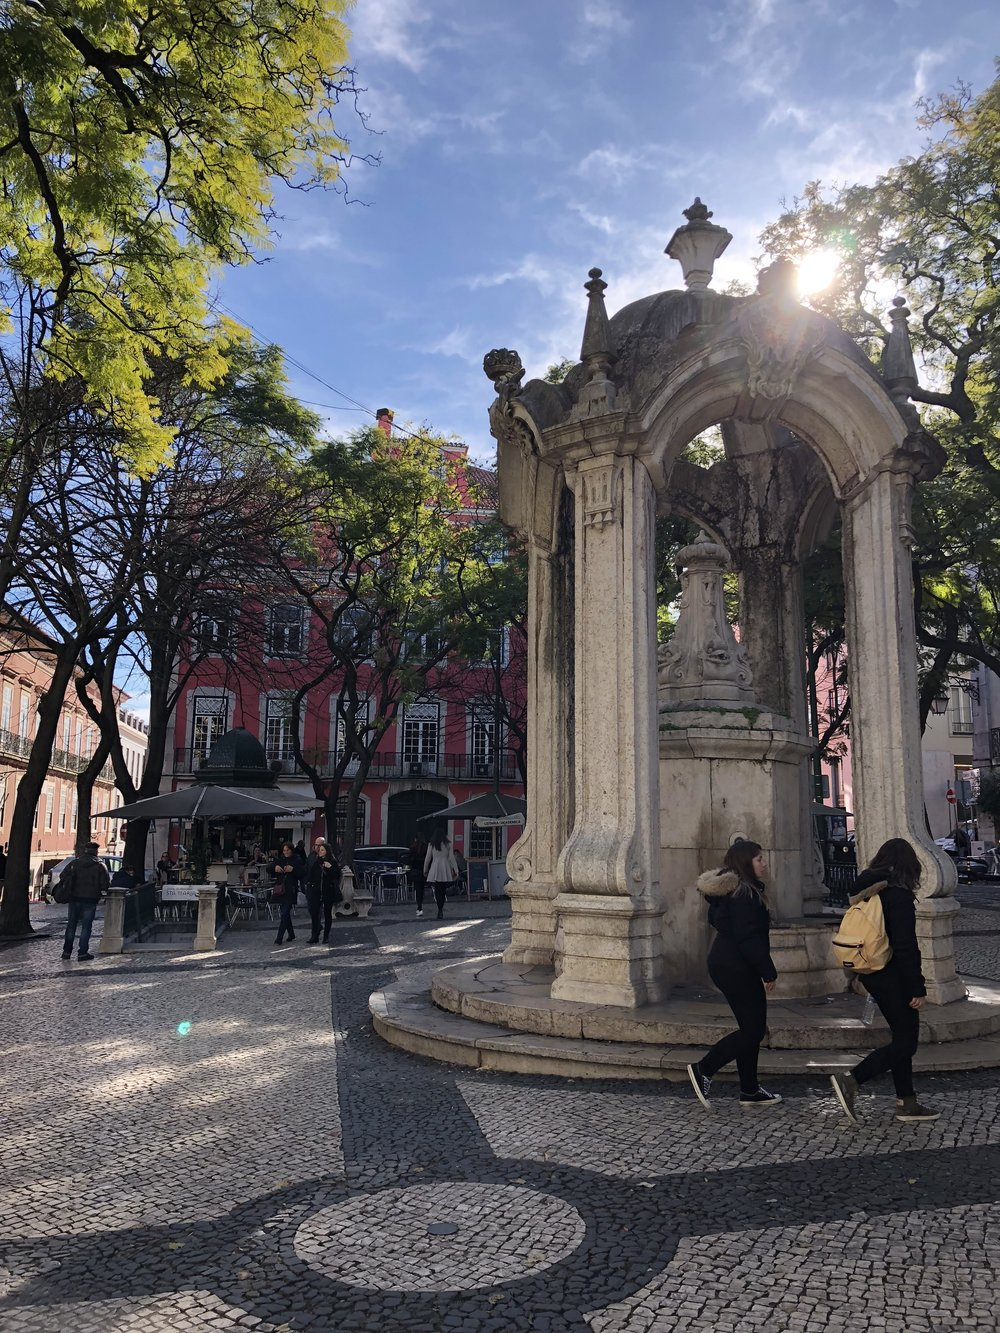 Chafariz do Carmo, an 18th-century fountain in the middle of a little town square.